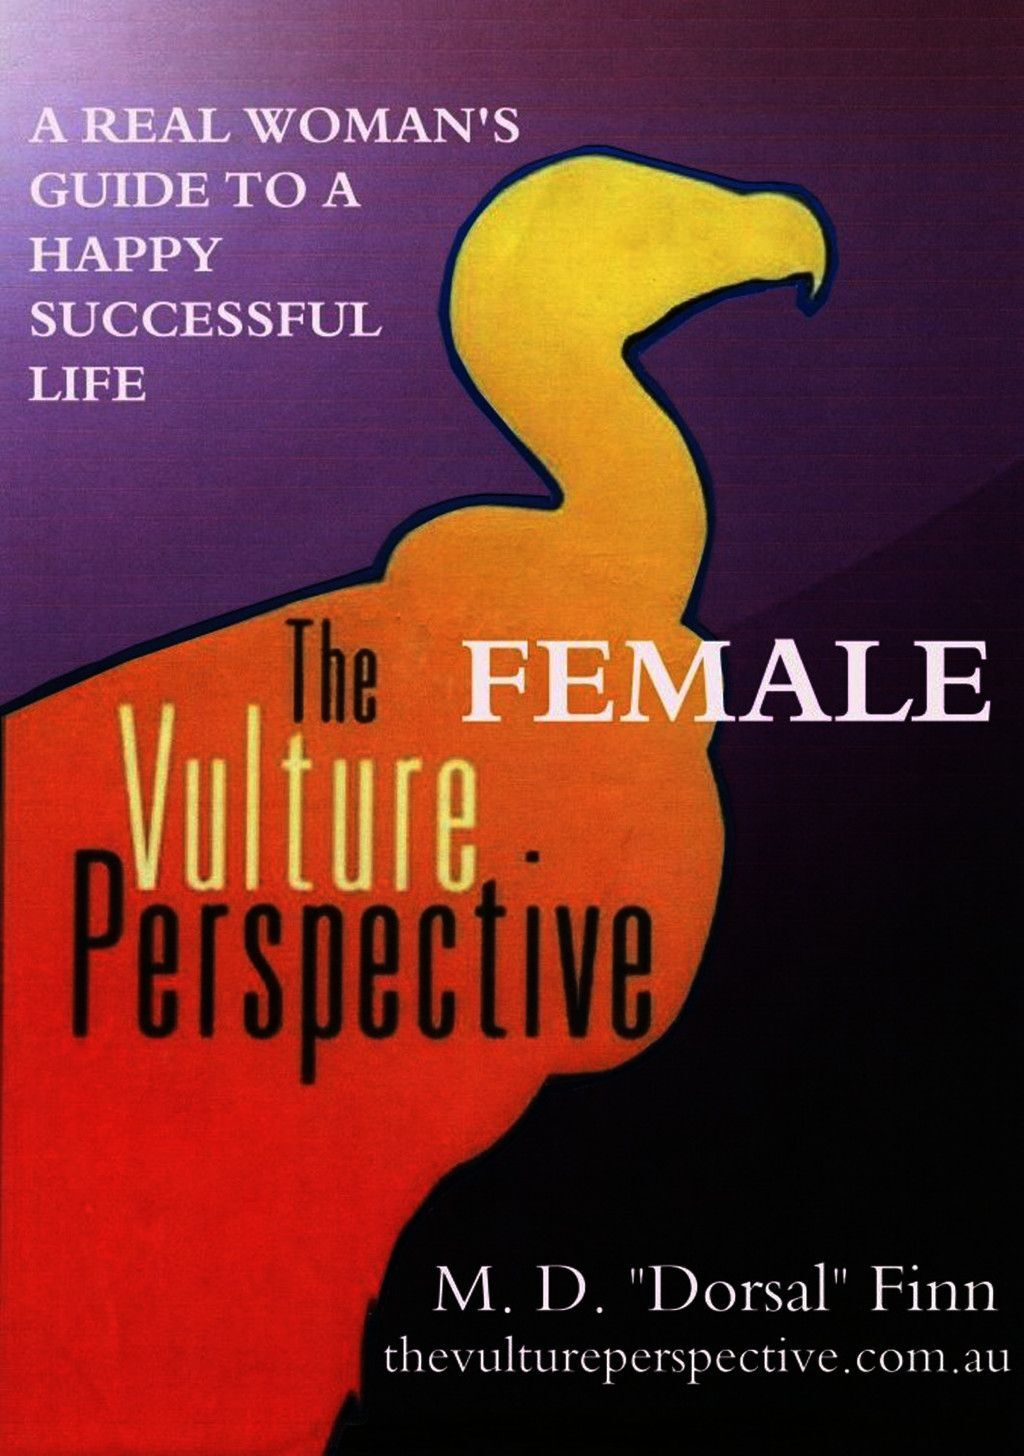 The Female Vulture Perspective